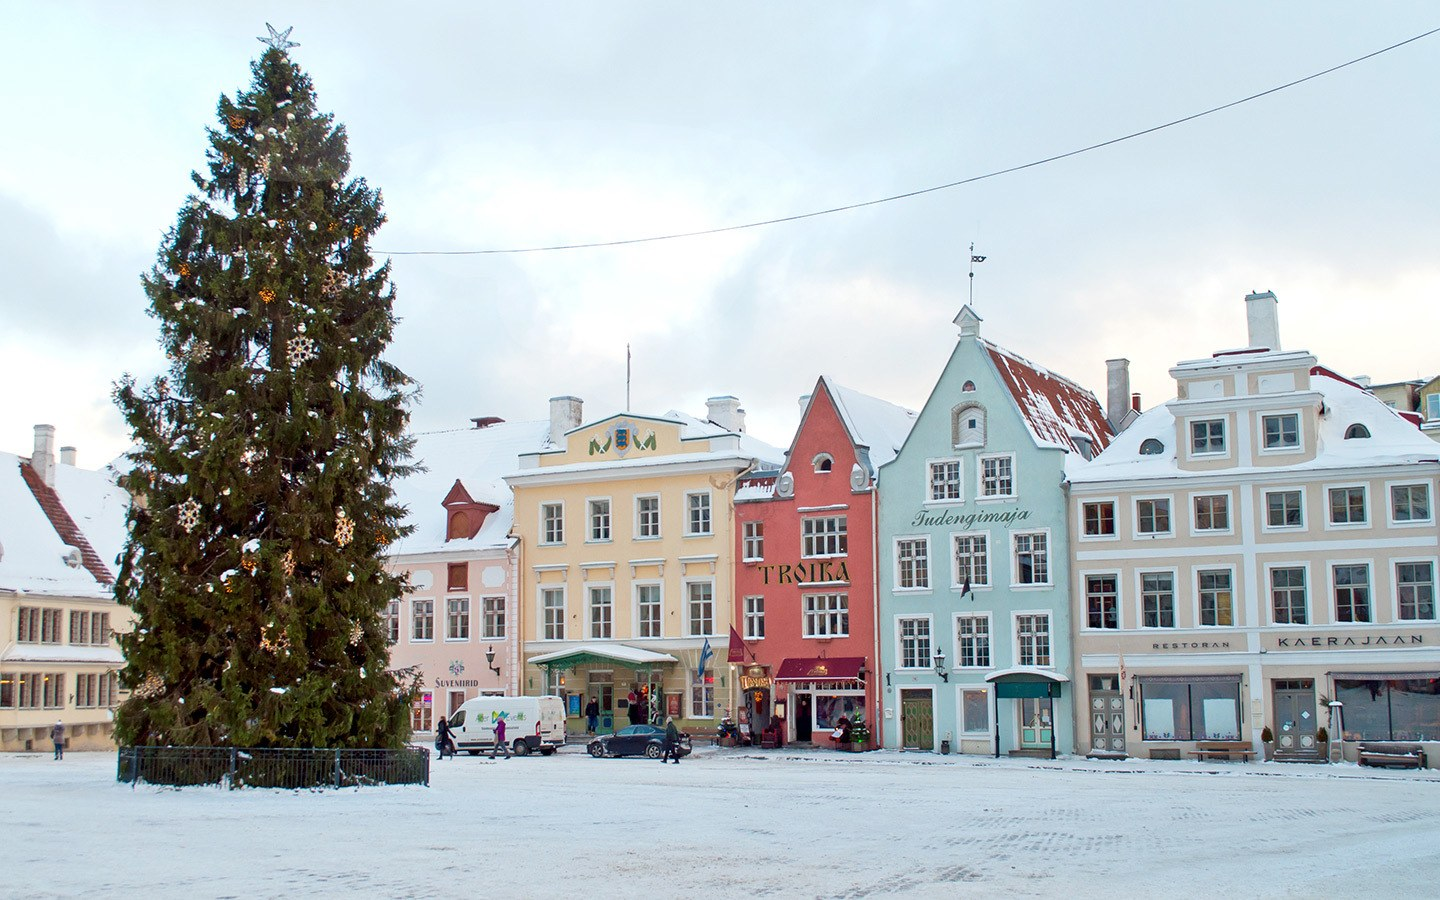 Snowy old town square in Tallinn Estonia